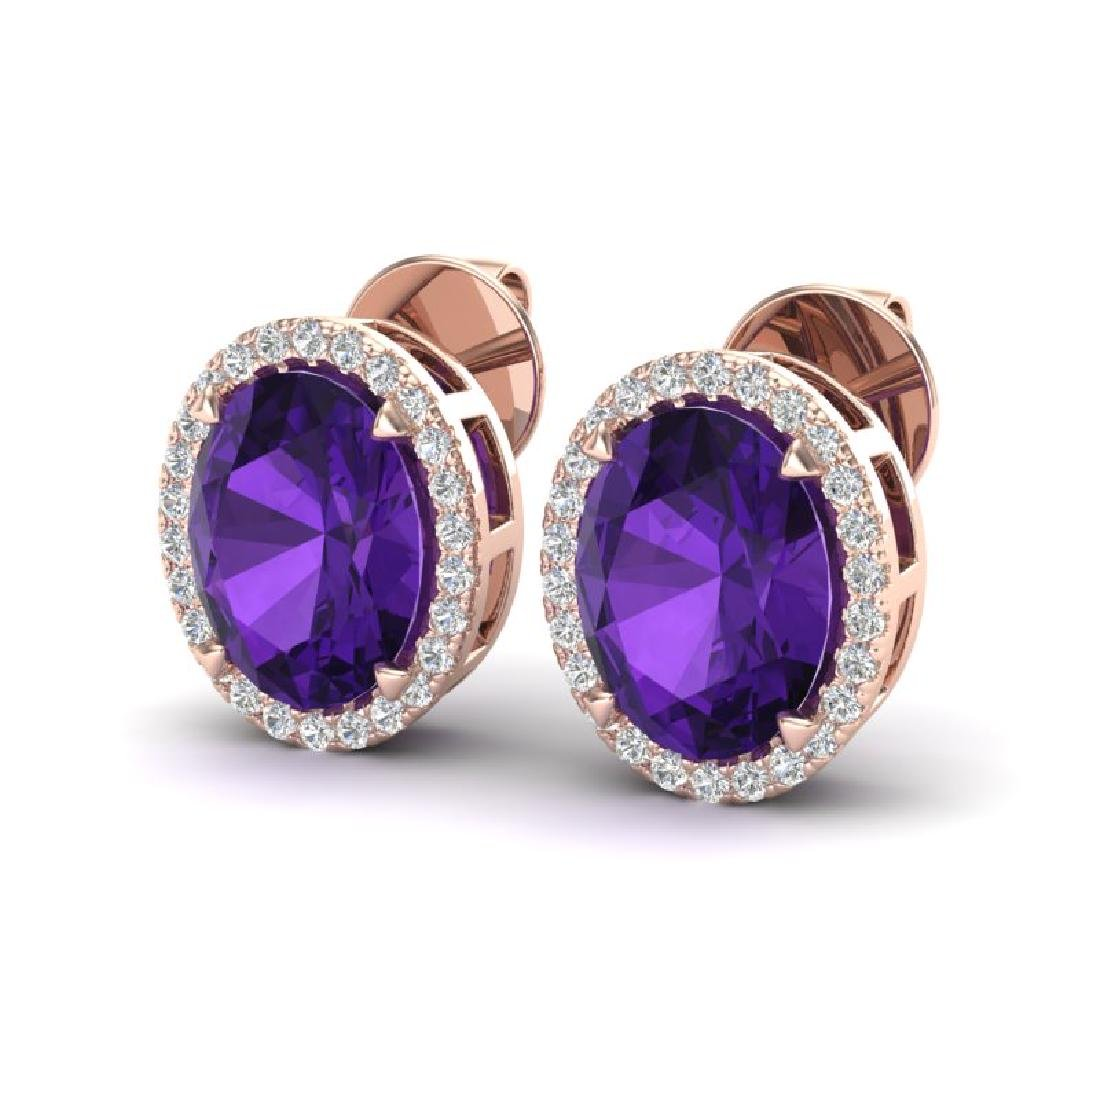 5.50 CTW Amethyst & Micro VS/SI Diamond Halo Earrings